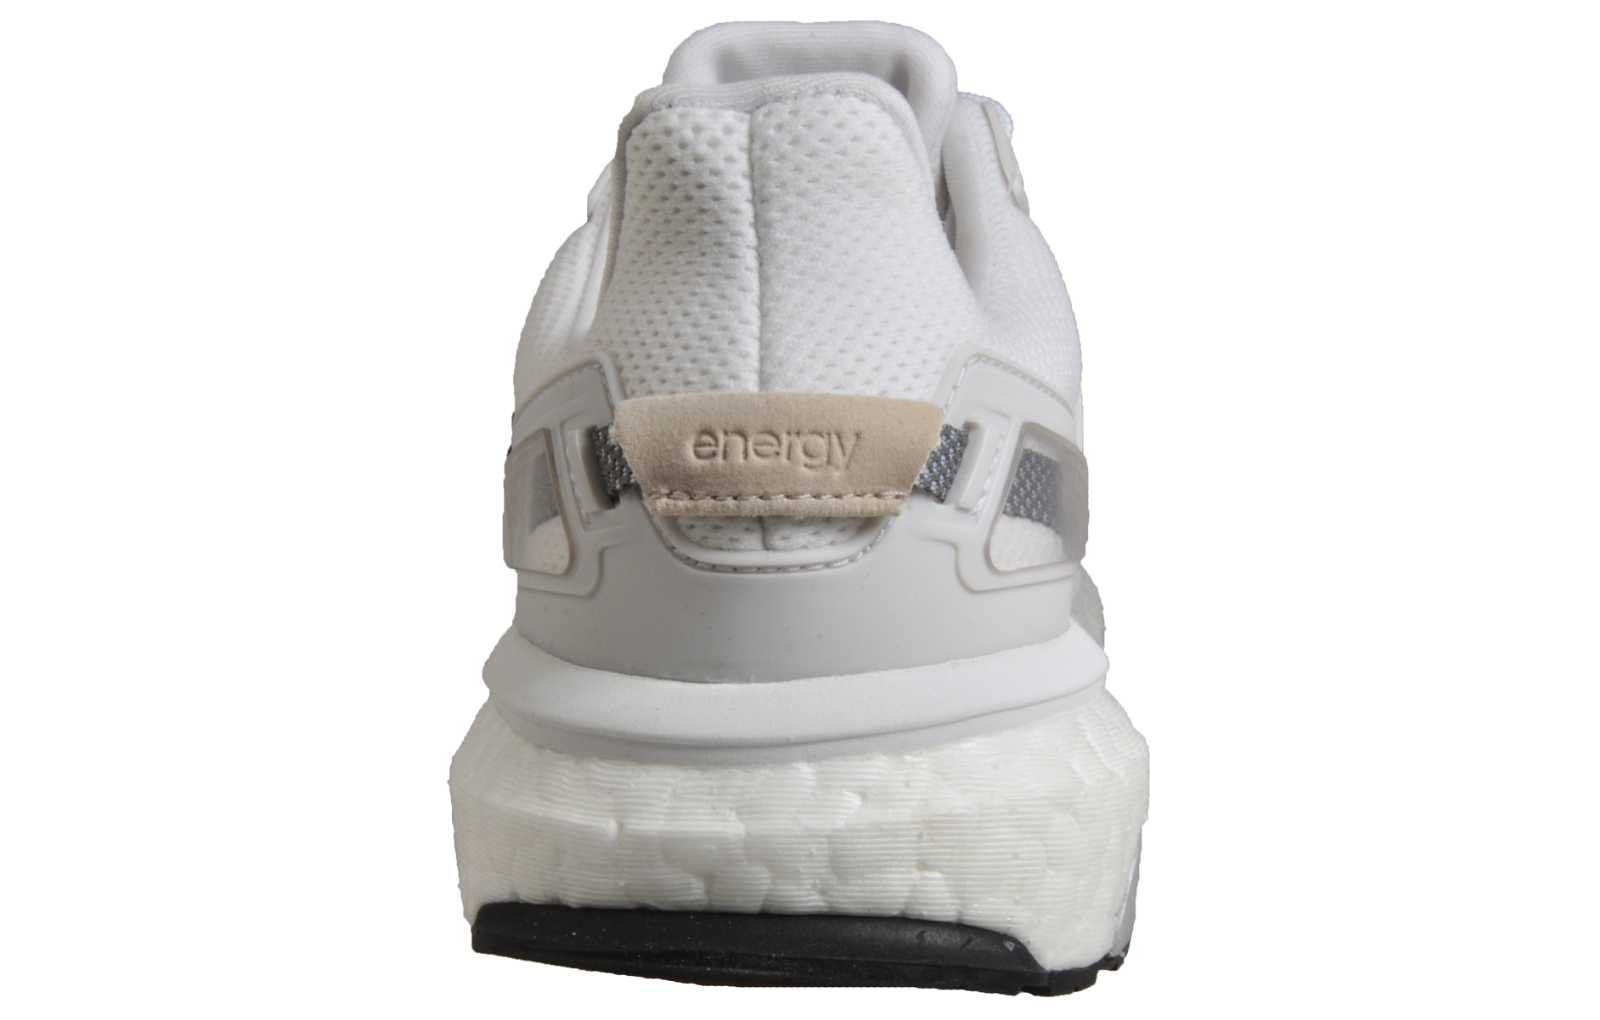 27c7426a86e98 Adidas Energy Boost 3 Premium Women s Performance Running Shoes White